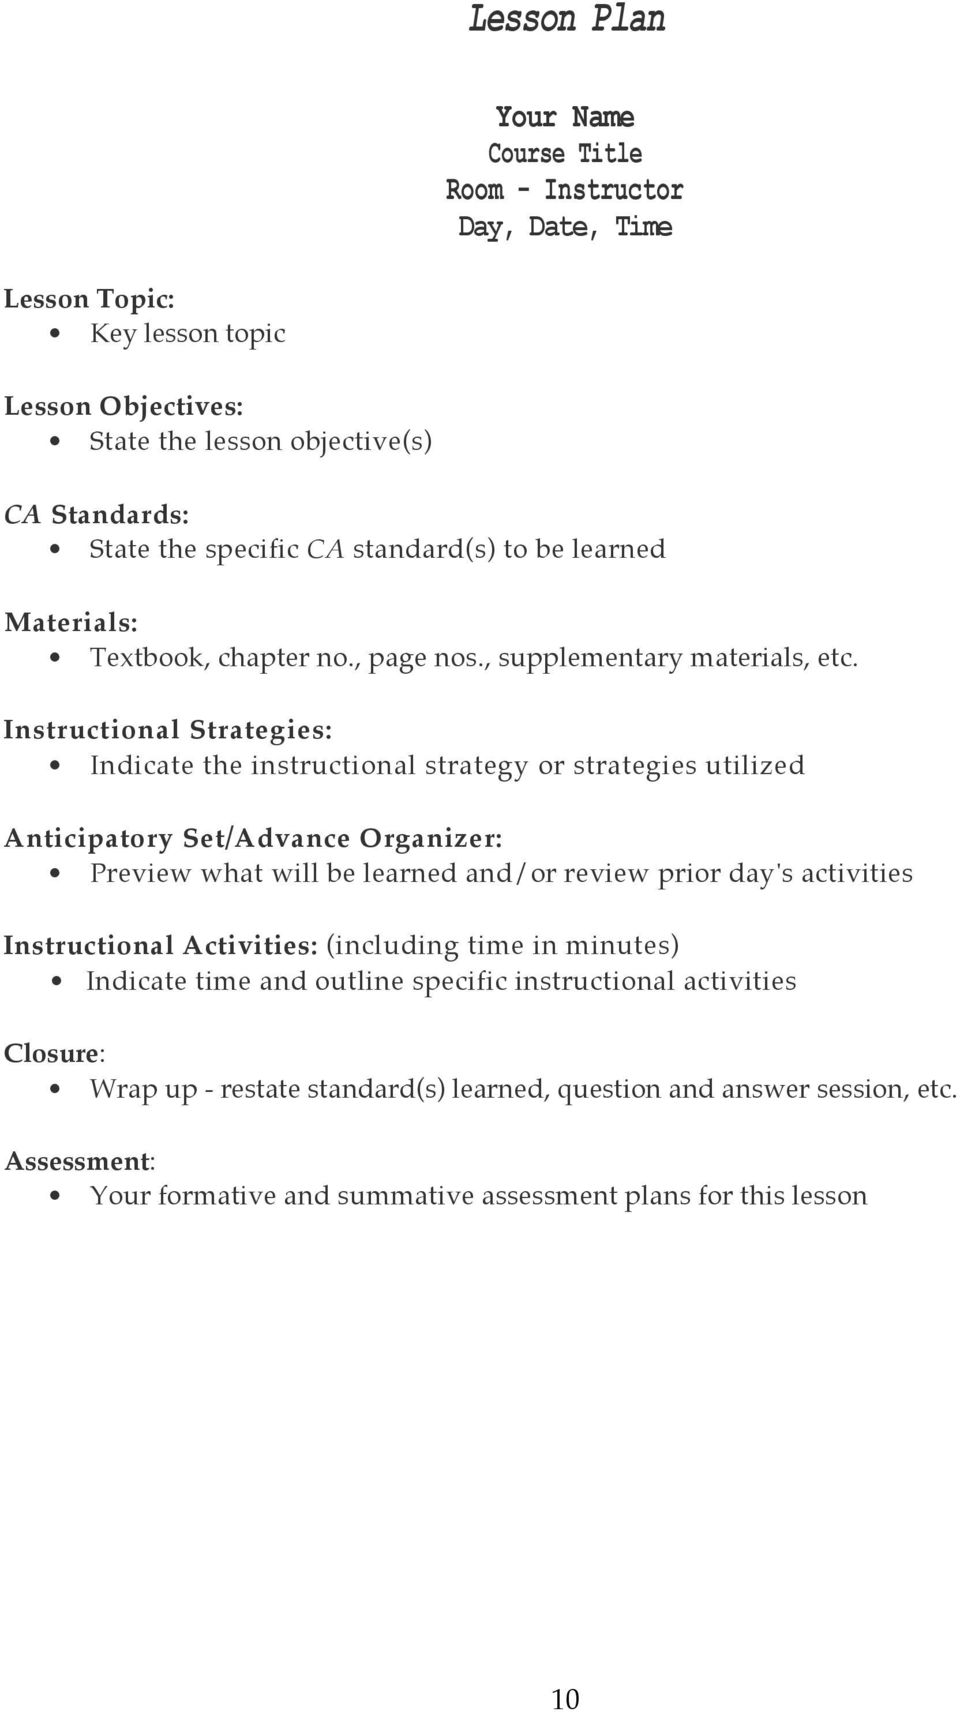 Instructional Strategies: Indicate the instructional strategy or strategies utilized Anticipatory Set/Advance Organizer: Preview what will be learned and/or review prior day's activities